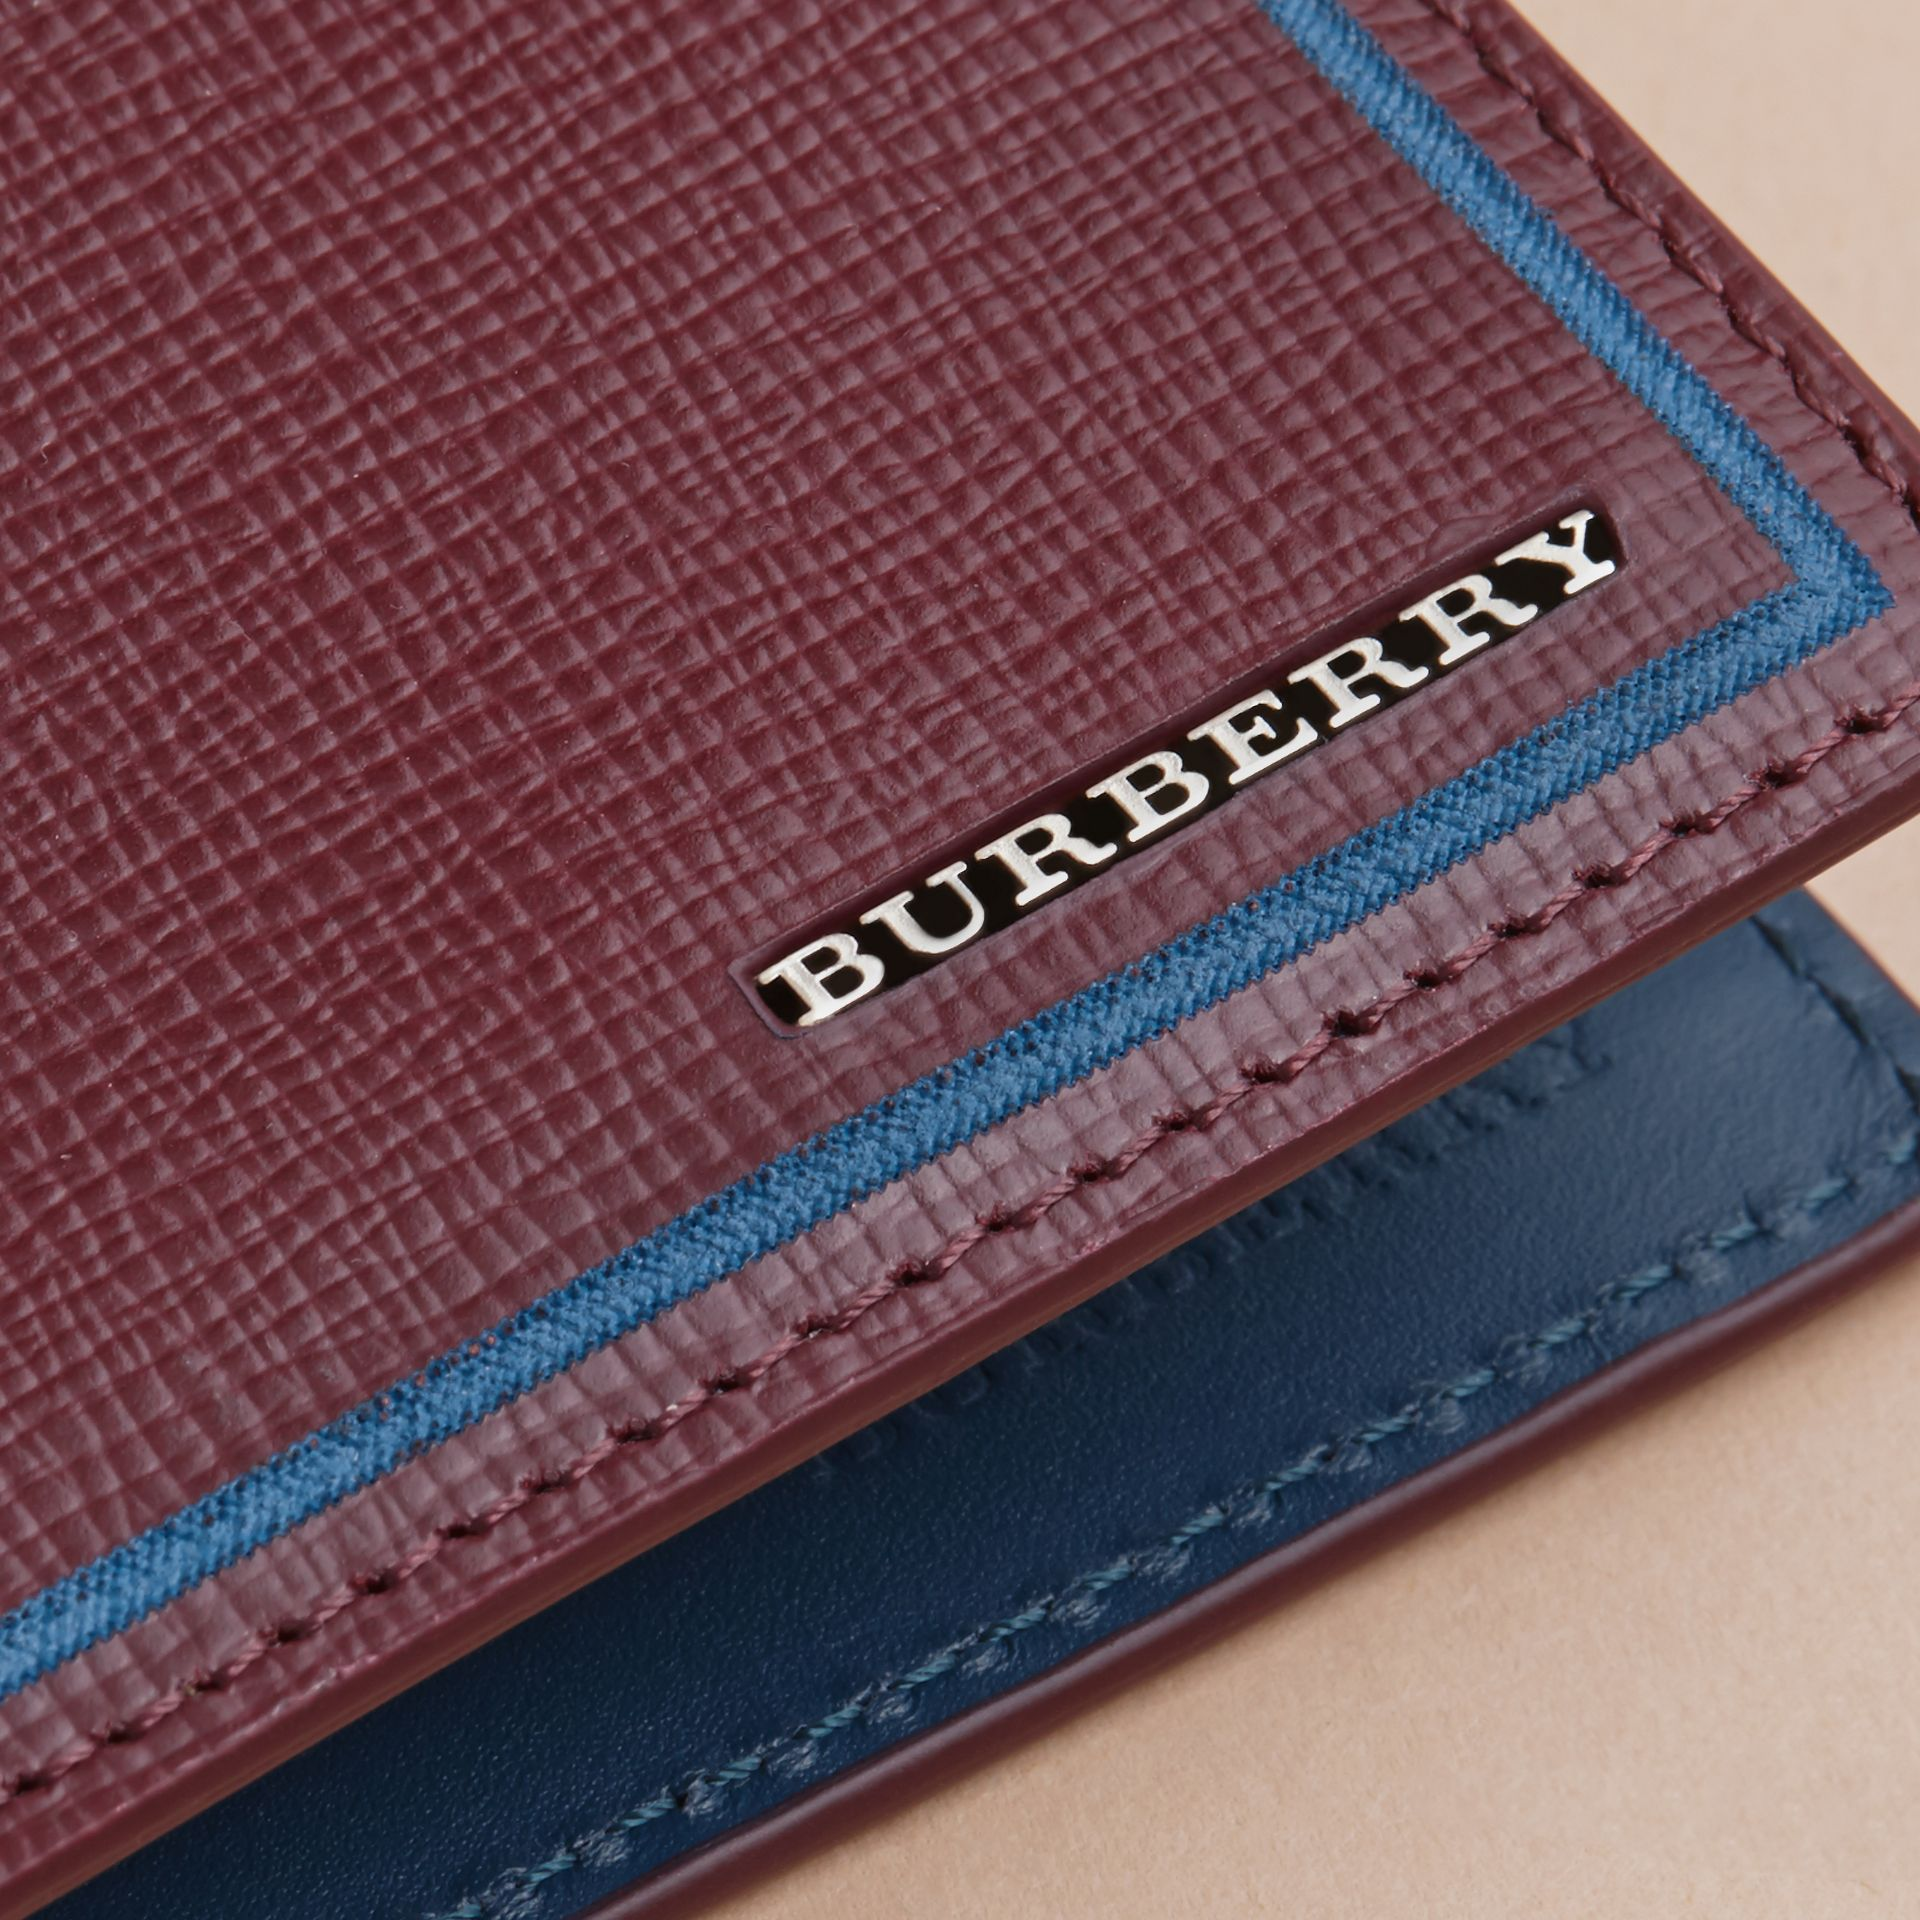 Border Detail London Leather Bifold Wallet Burgundy Red - gallery image 2